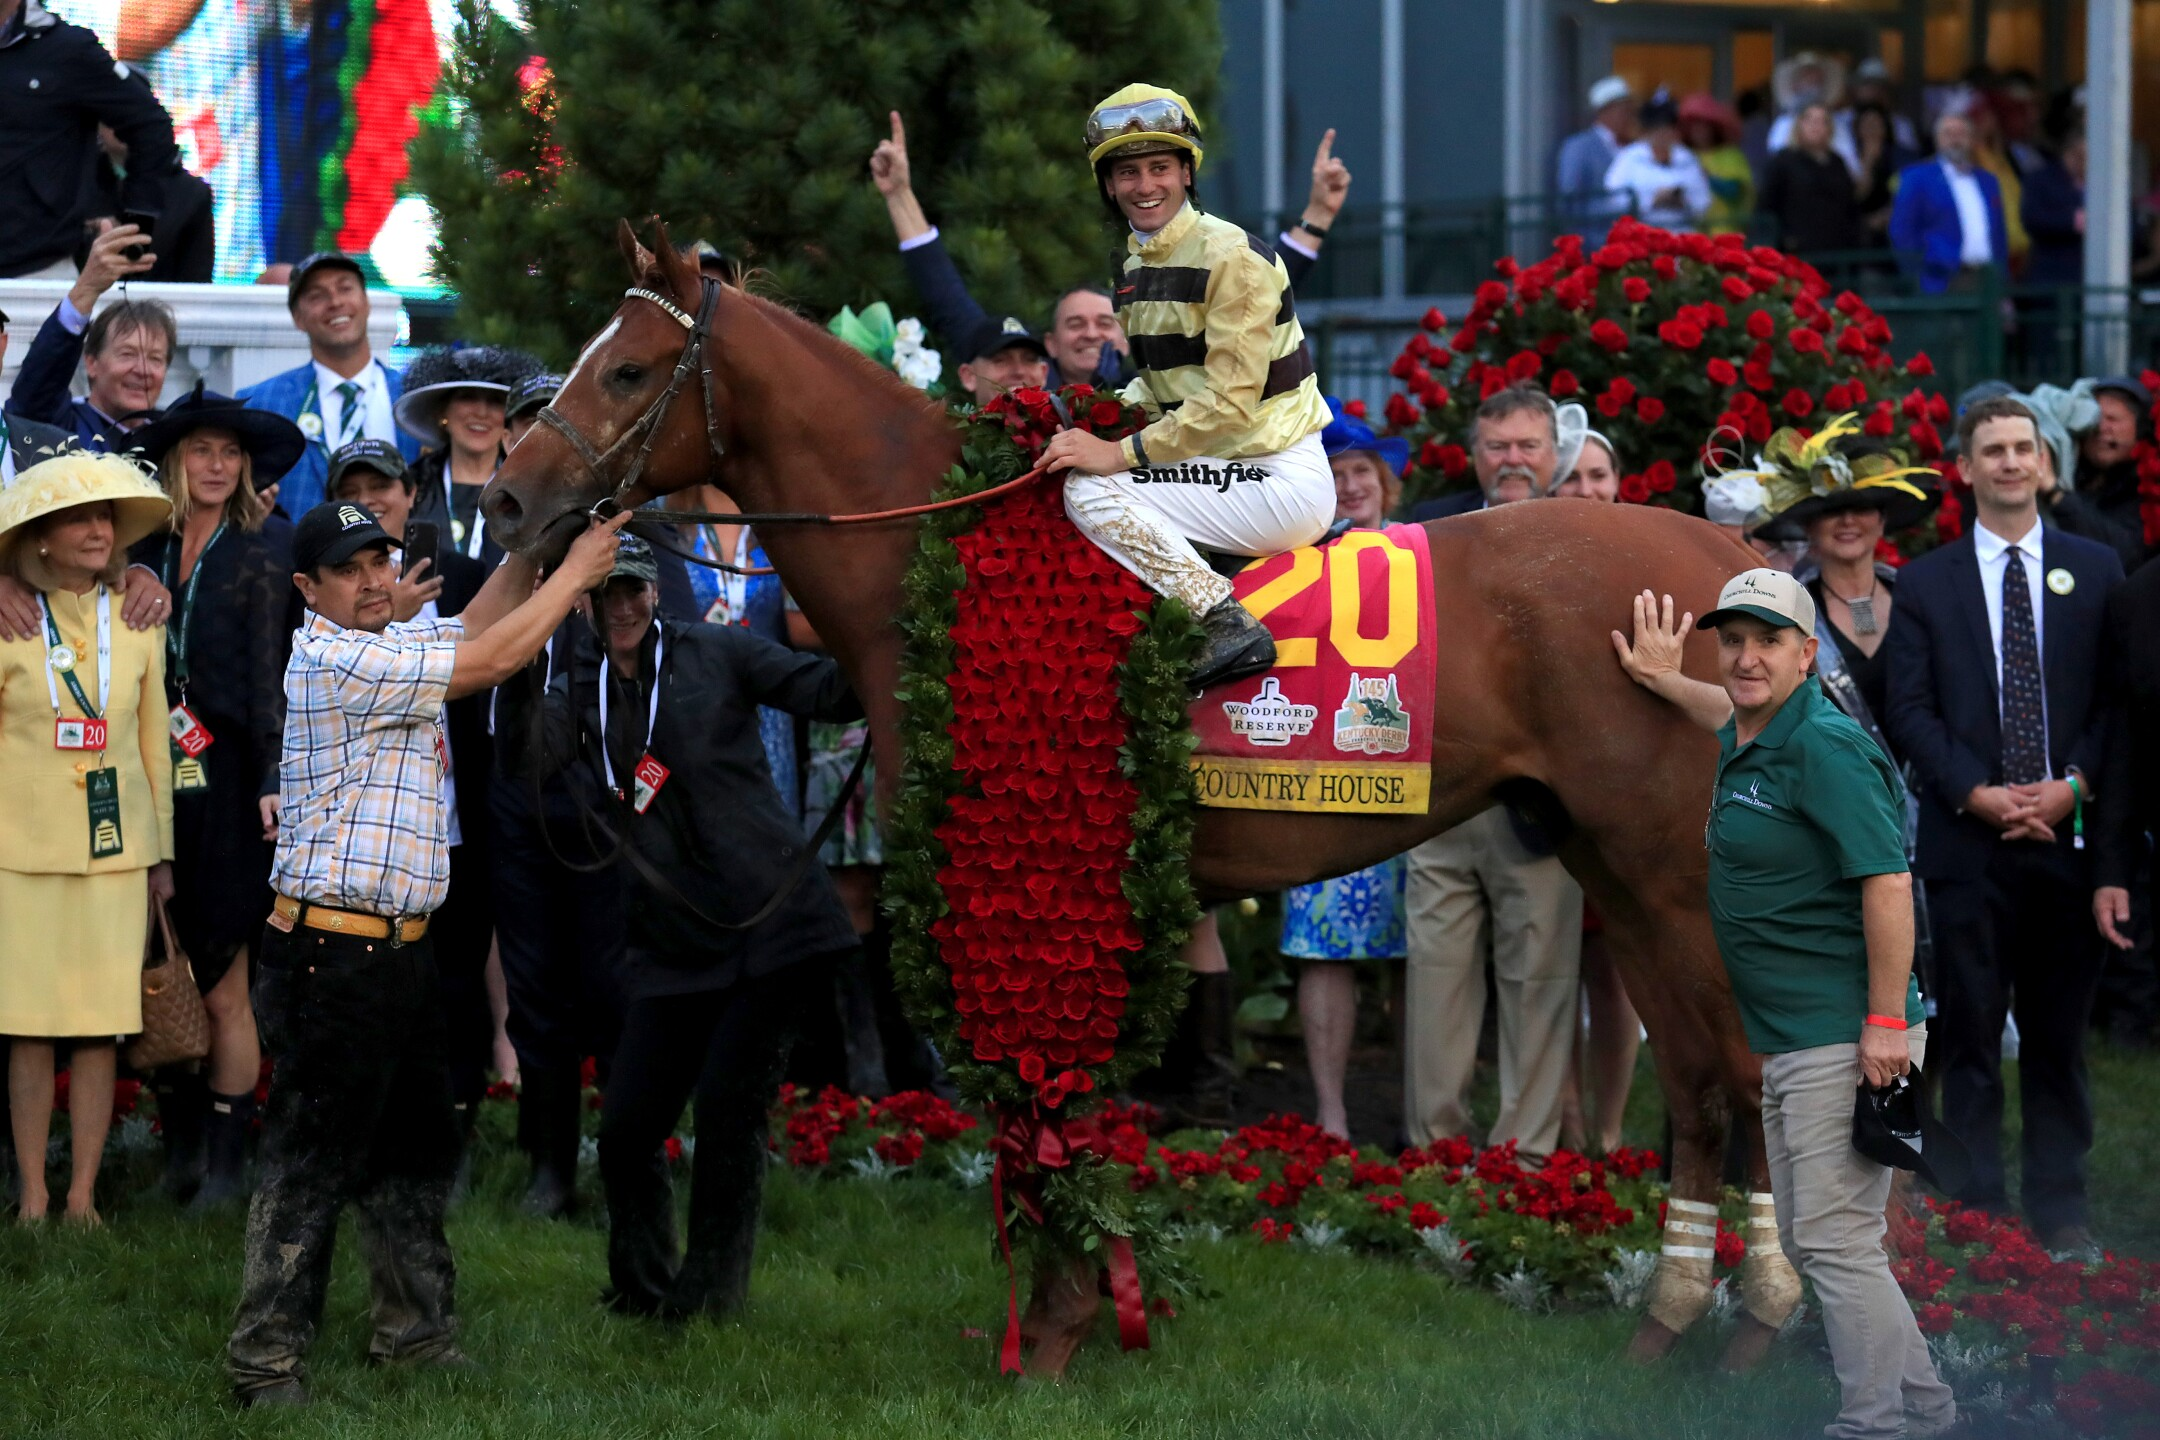 Photos: Country House wins Kentucky Derby after Maximum Security gets disqualified